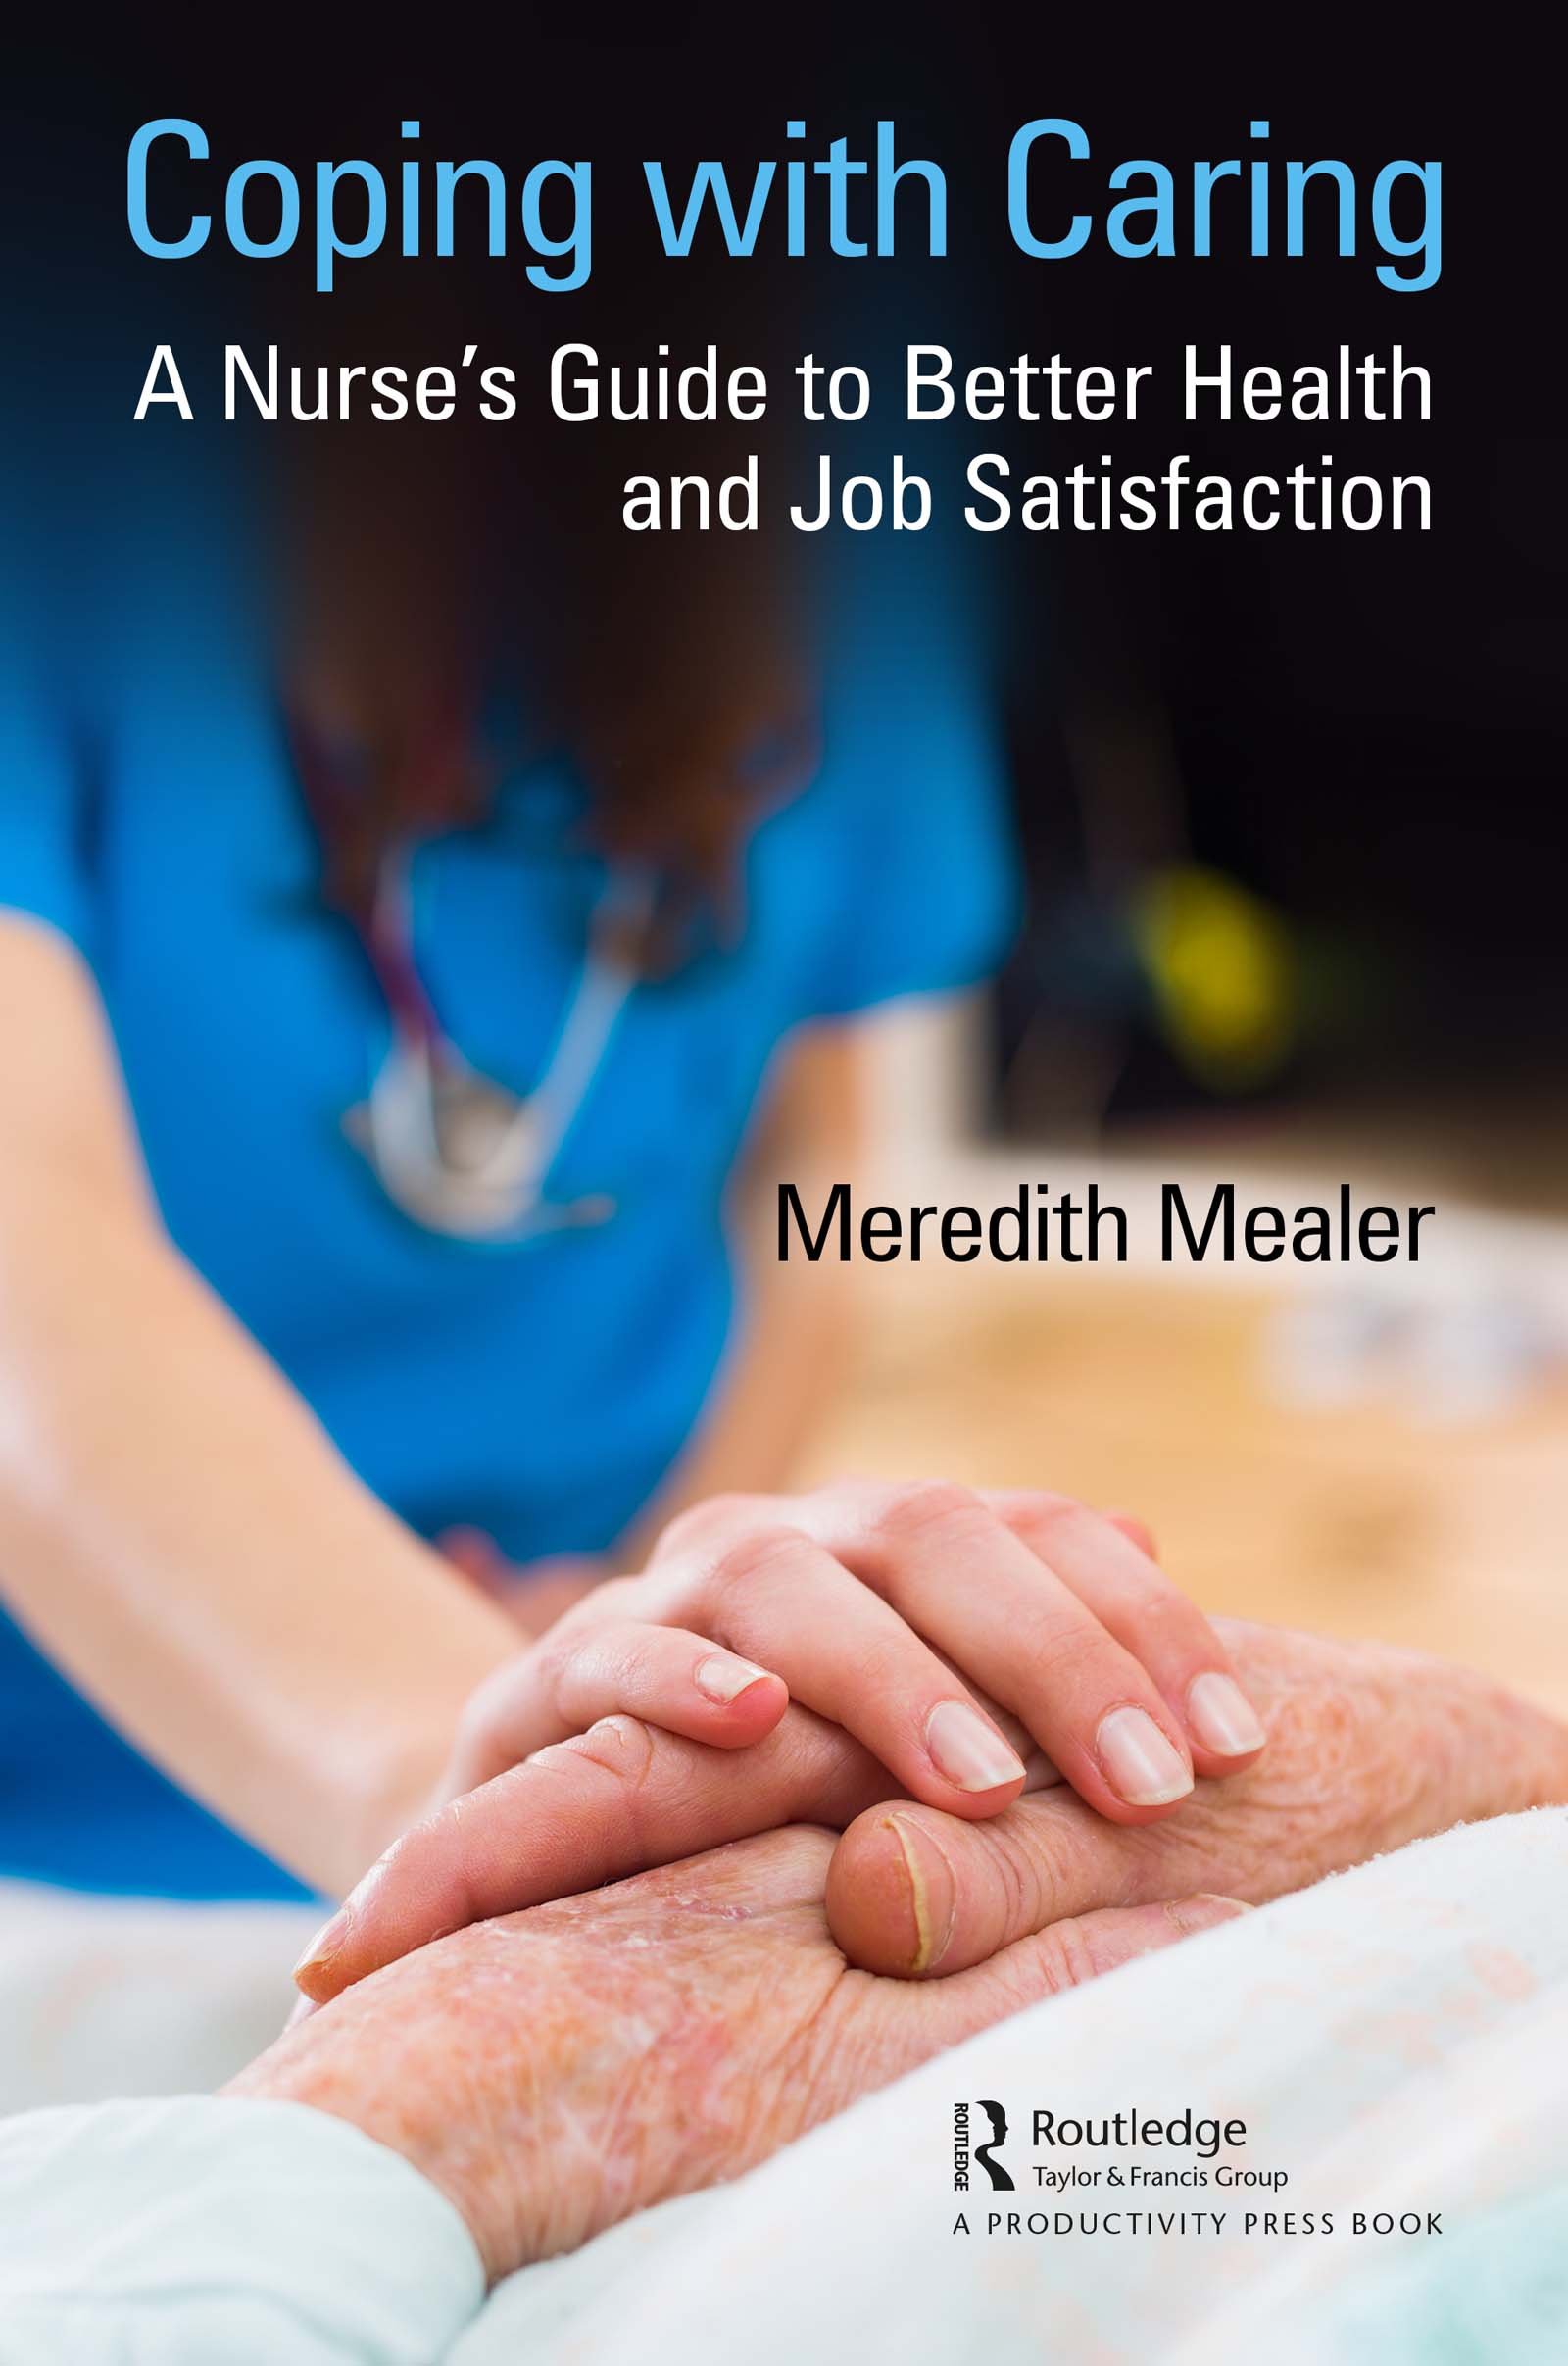 Coping with Caring: A Nurse's Guide to Better Health and Job Satisfaction book cover